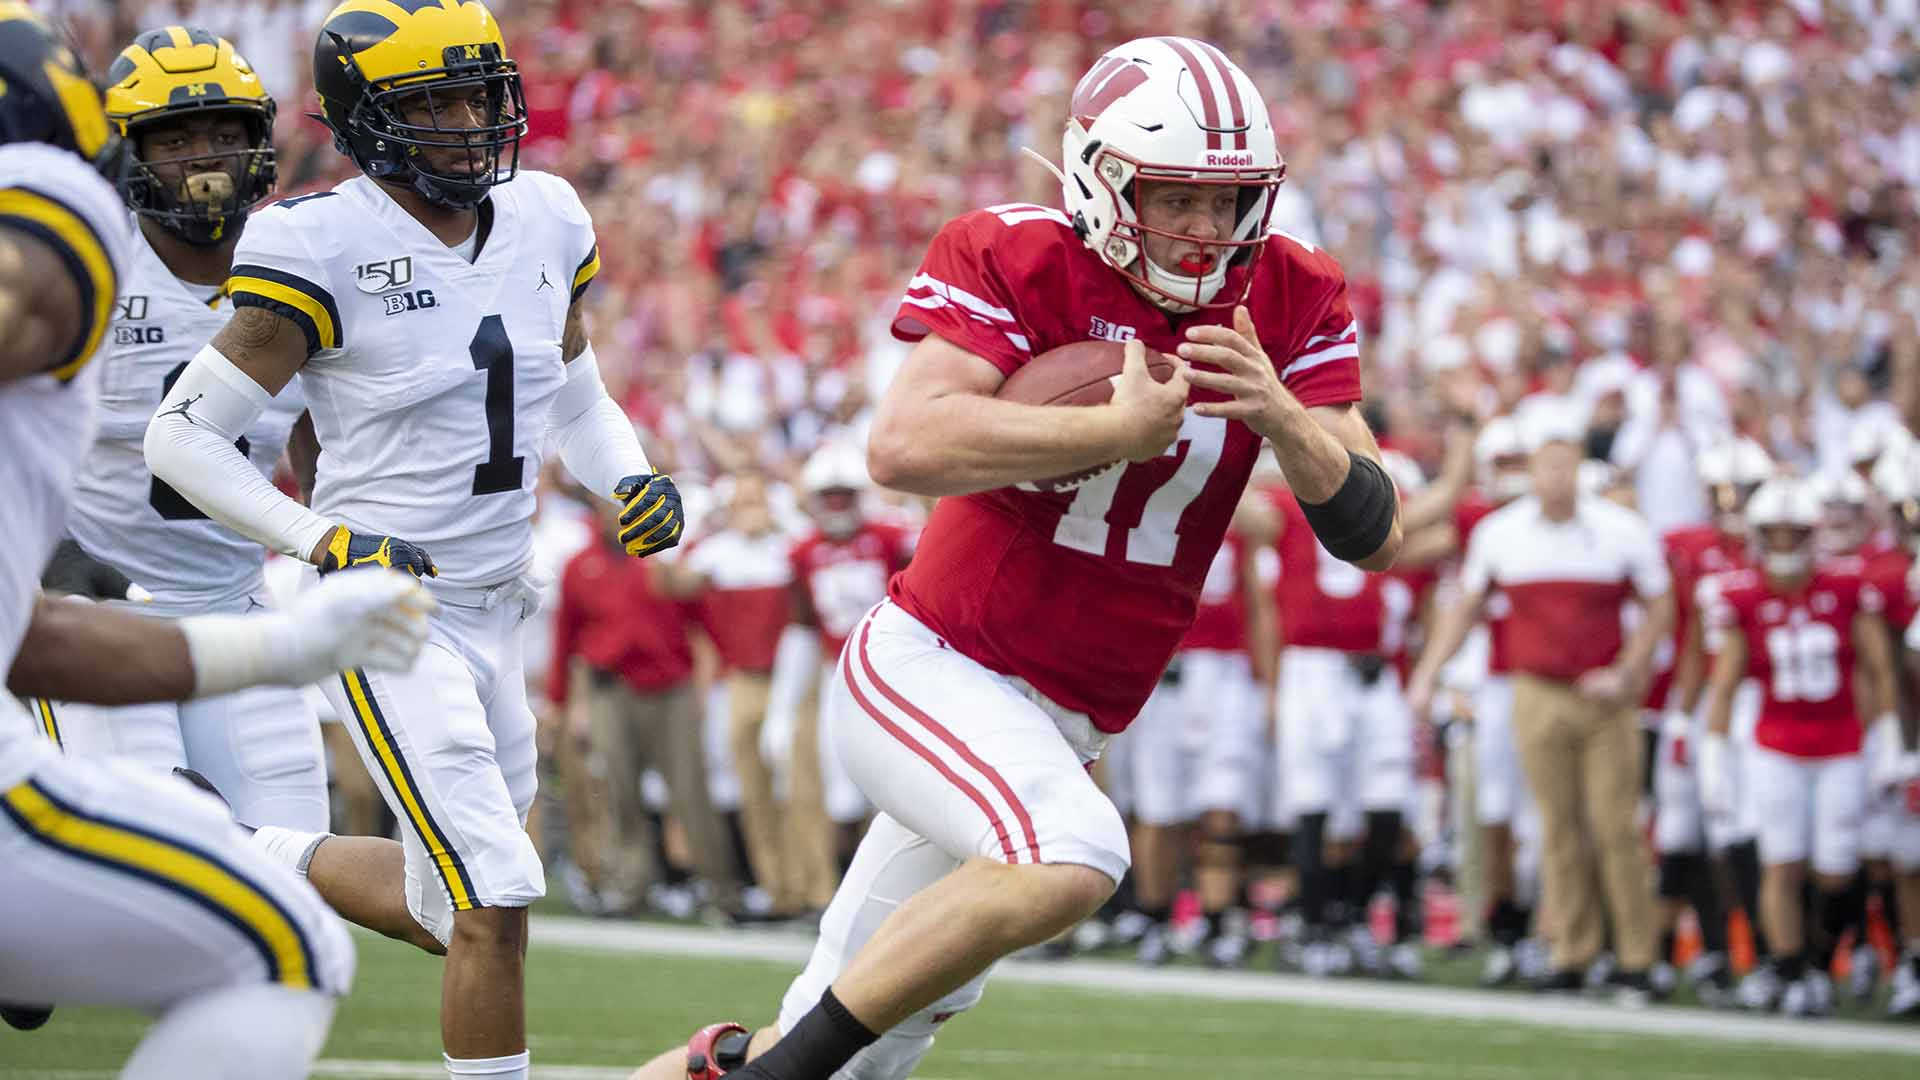 Lucas Win Against Michigan Answers Questions Silences